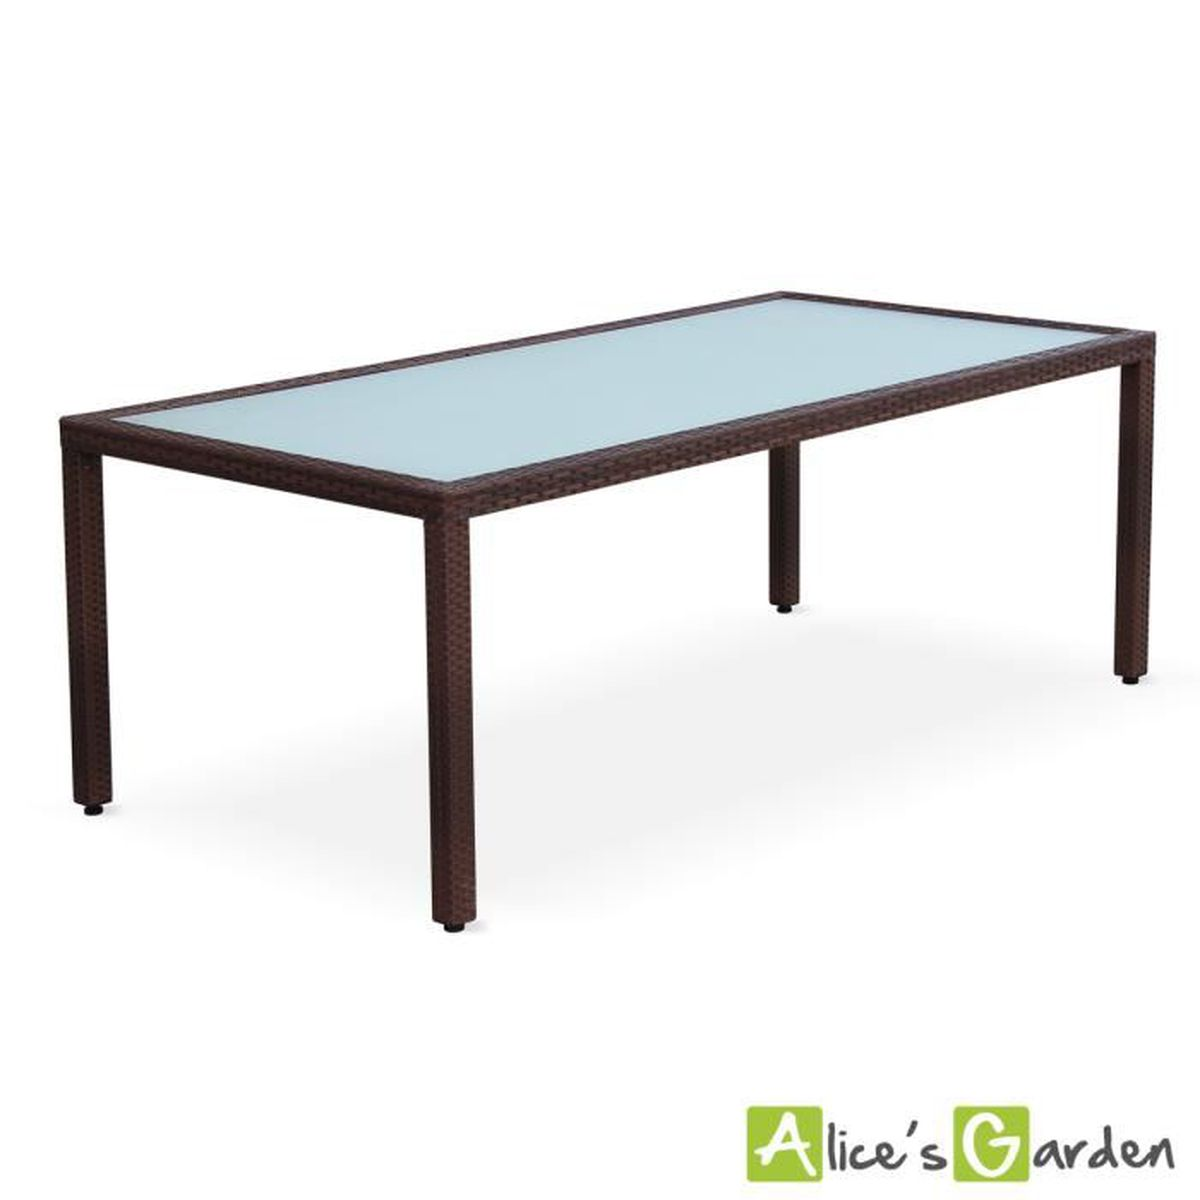 table de jardin 200cm achat vente table de jardin 200cm pas cher cdiscount. Black Bedroom Furniture Sets. Home Design Ideas